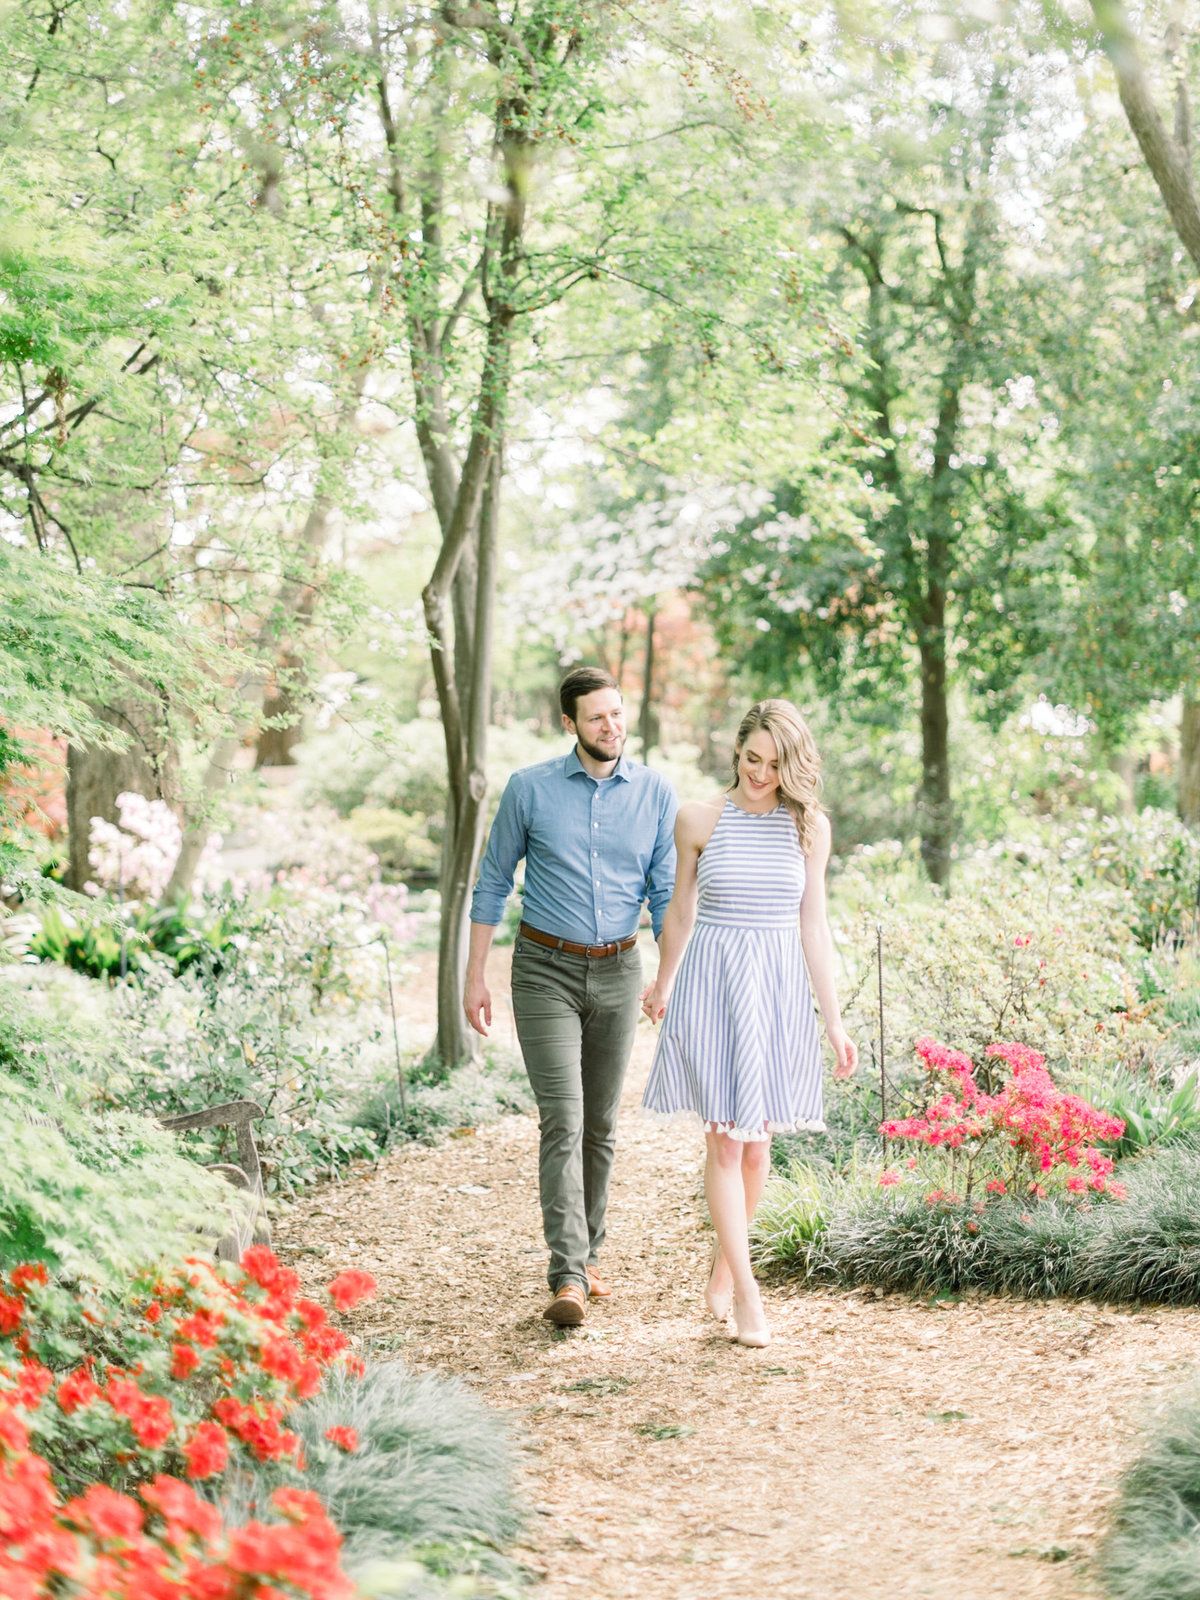 Courtney Hanson Photography - Dallas Spring Engagement Photos at Dallas Arboretum-2592